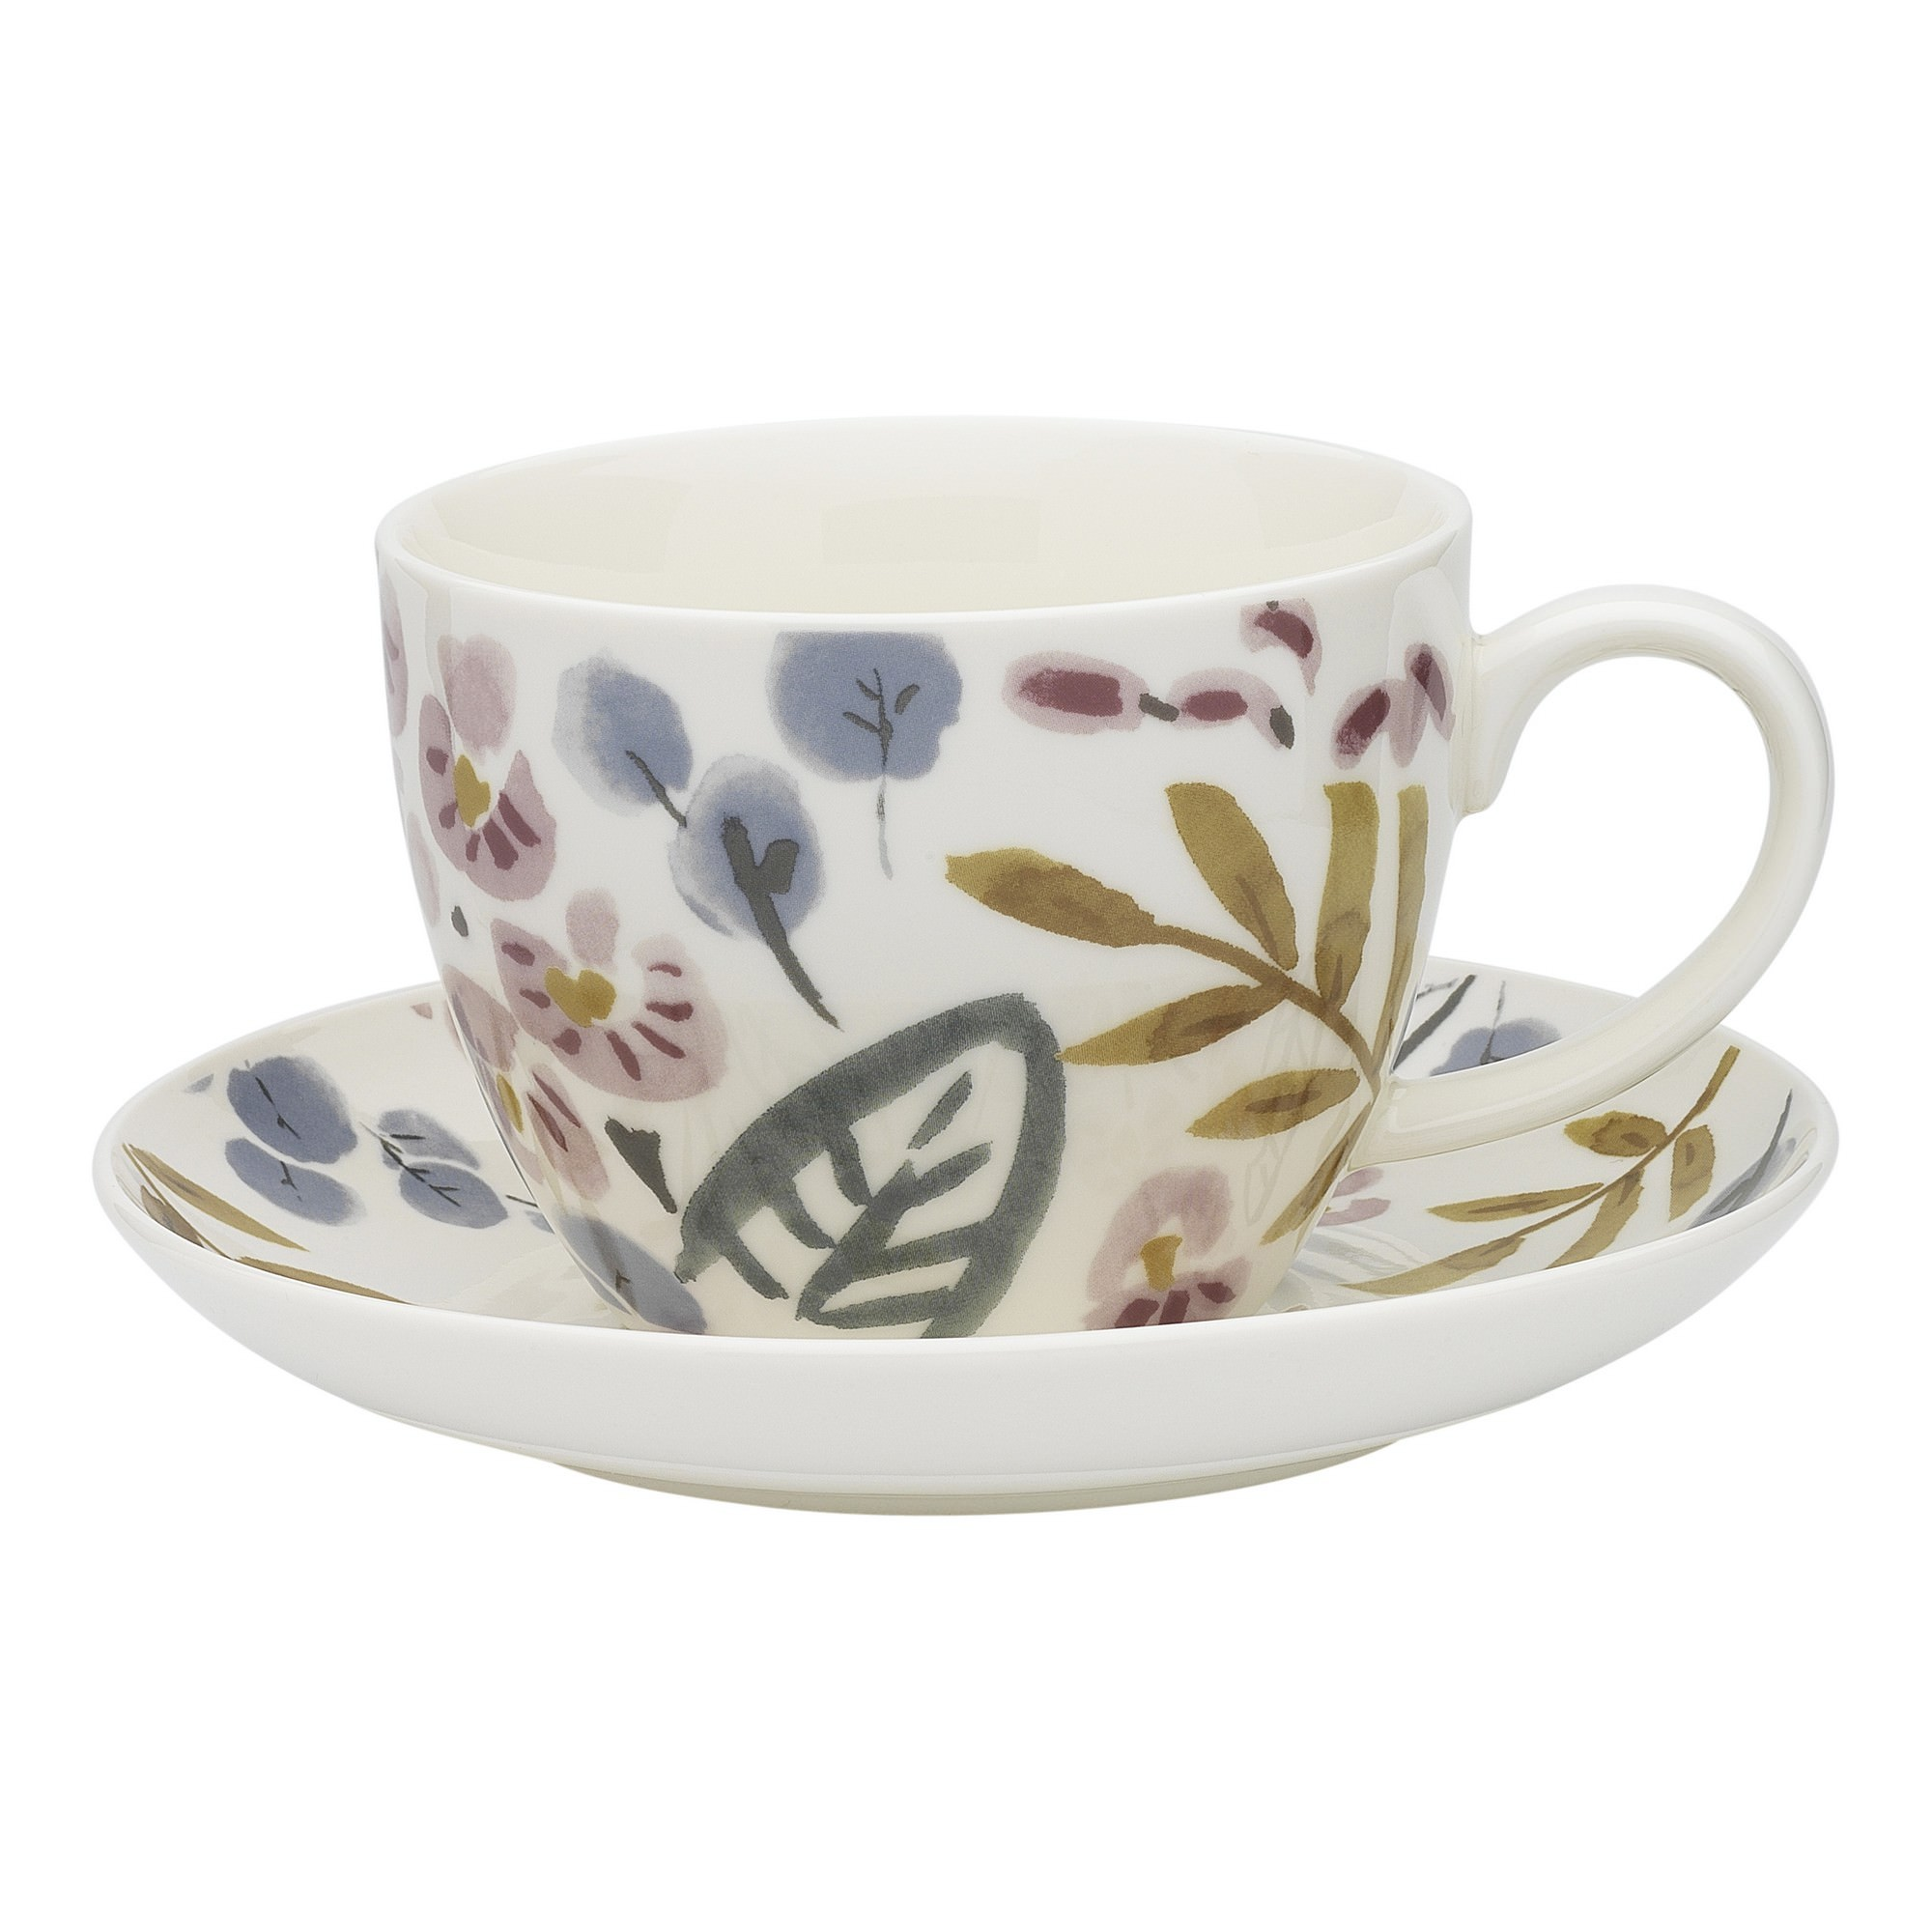 Ecology Frida New Bone China Cup & Saucer Set